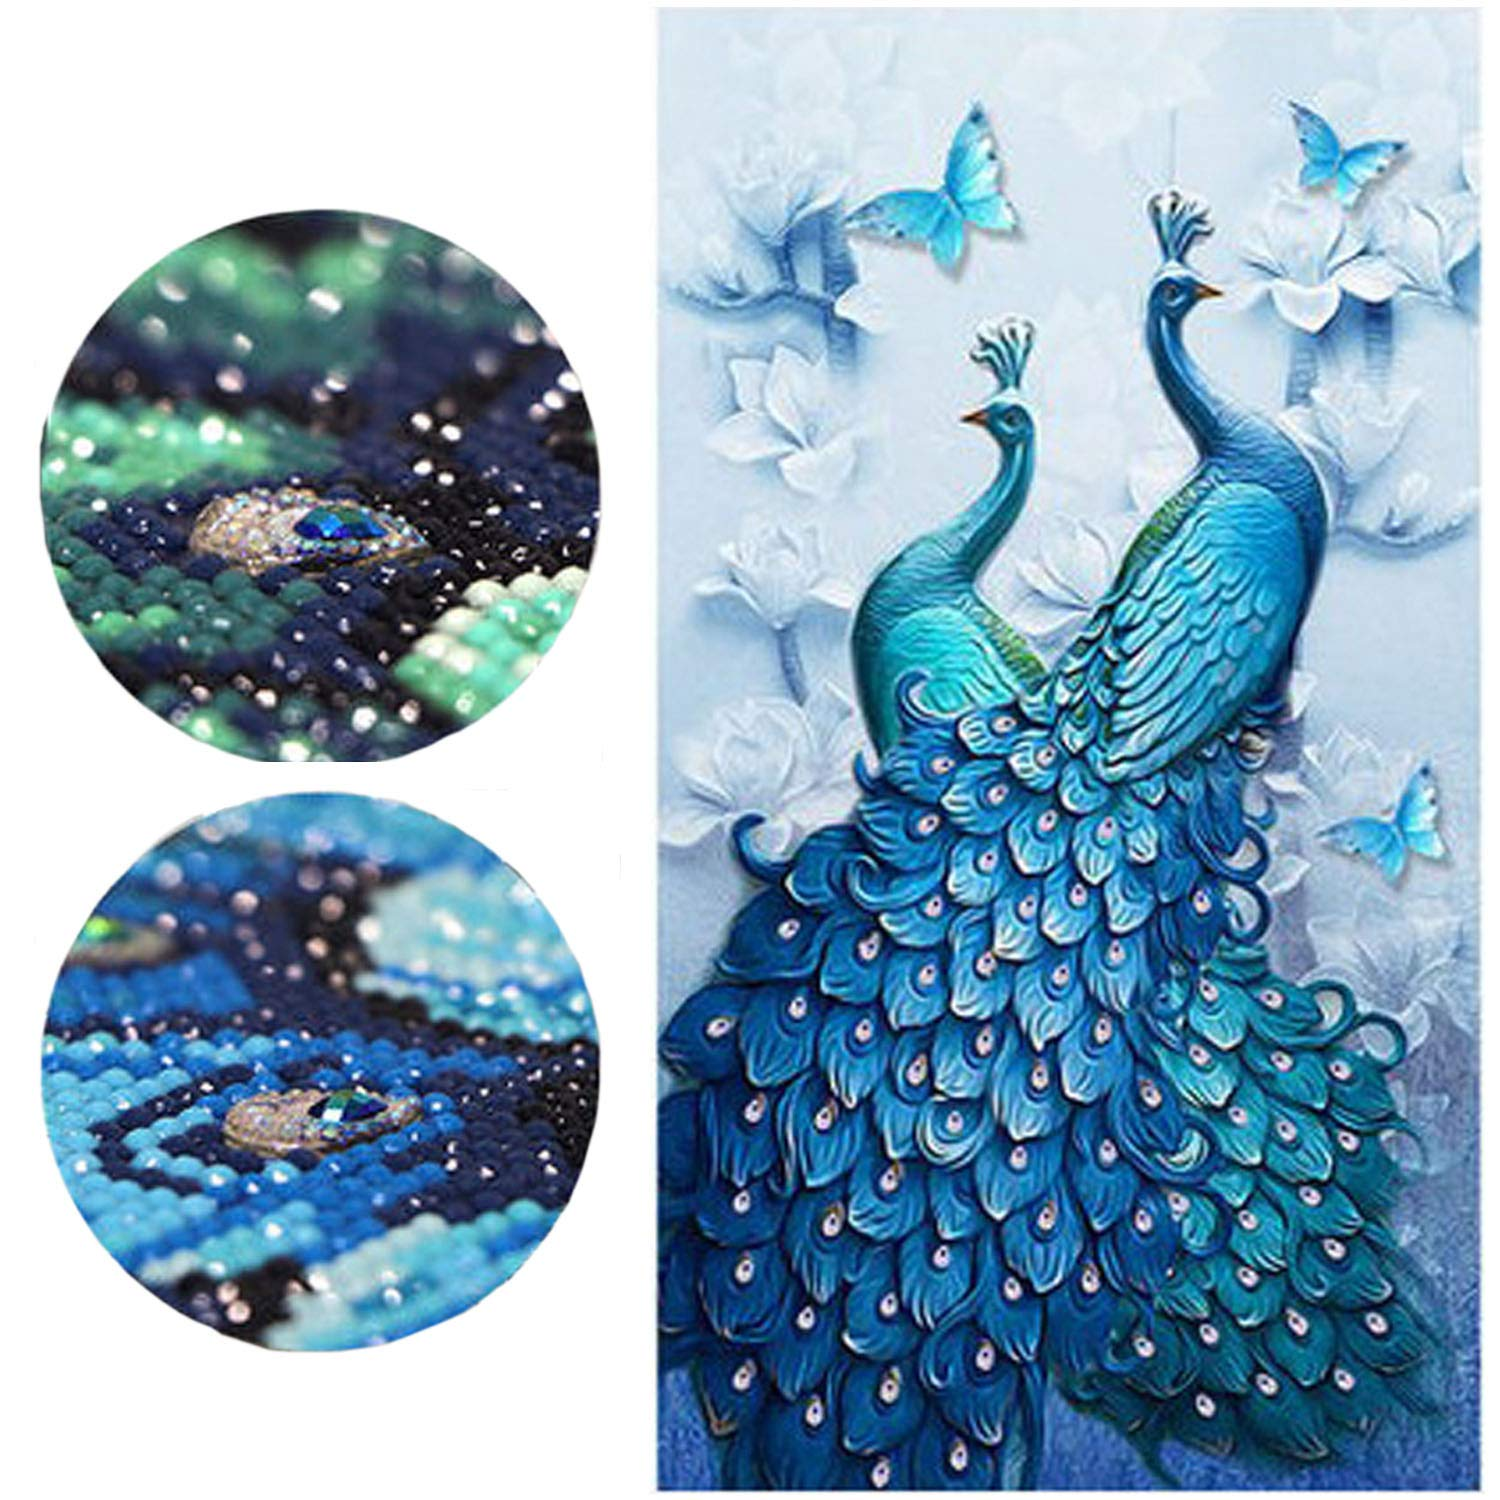 5D Diamond Painting Kits Full Drill Paint by Number Kits for Adults with Diamonds for Home Wall Decor - Couple Peacocks 18x31'' (45x80cm)